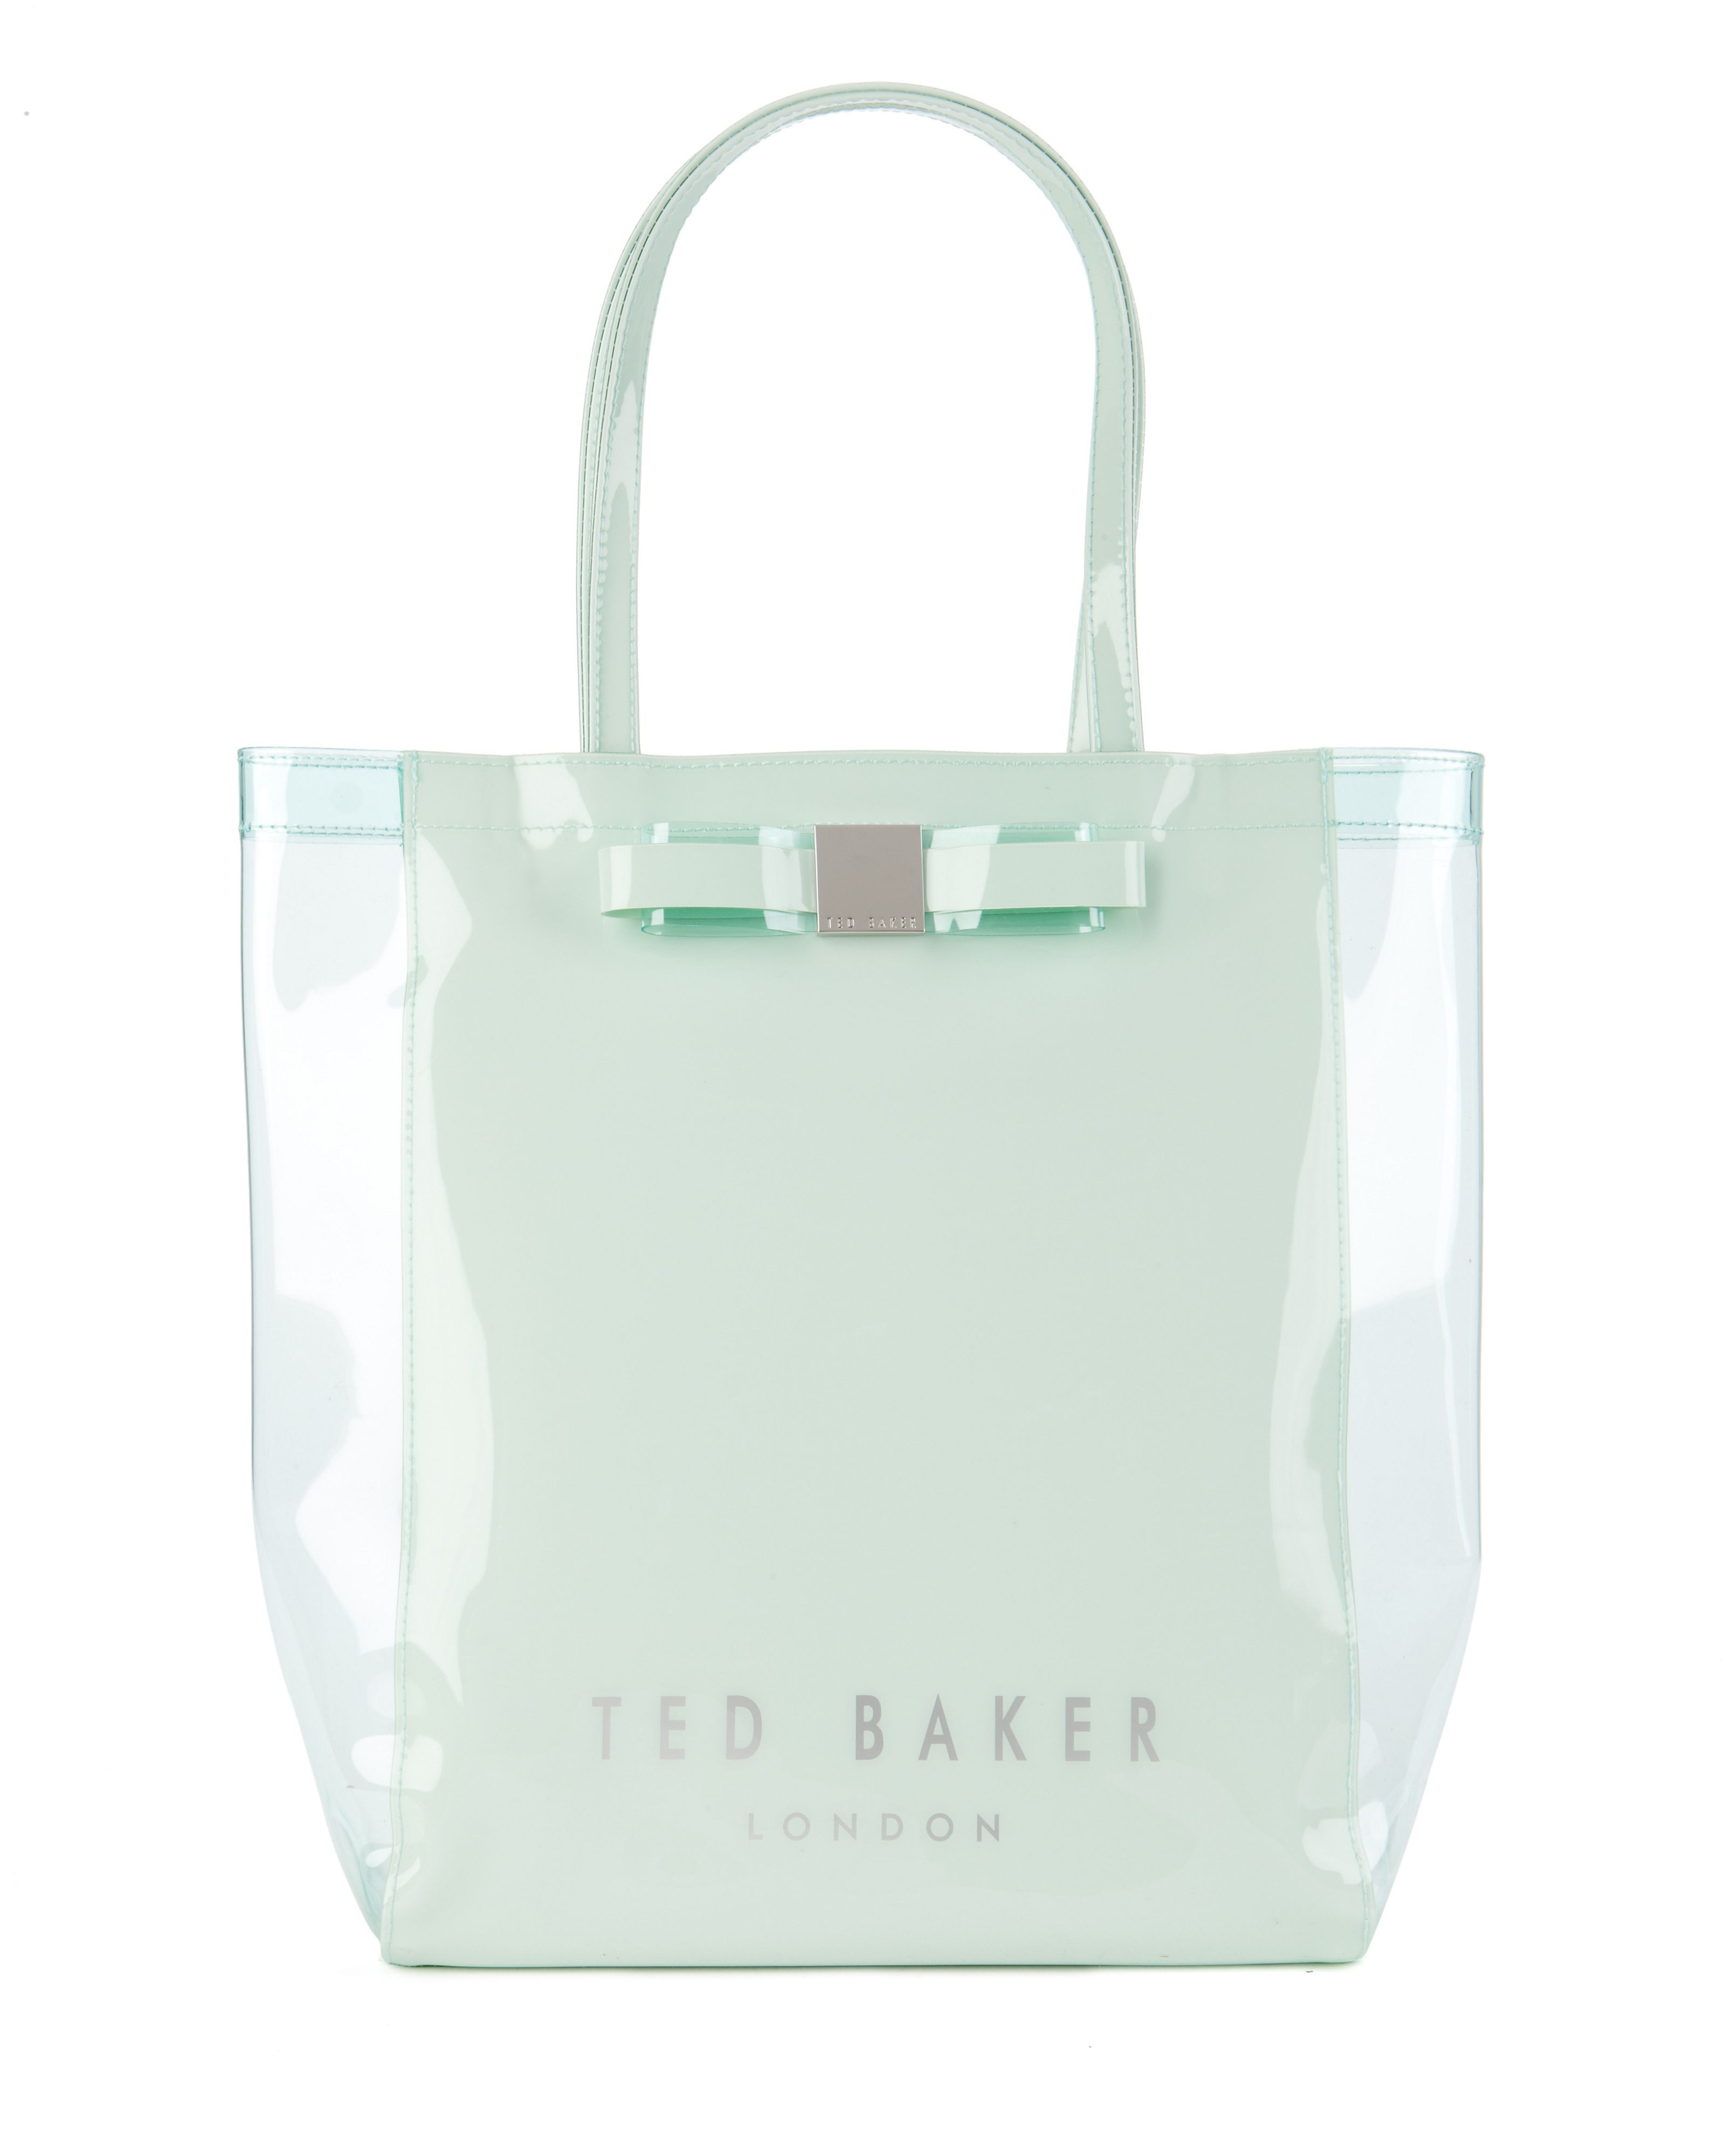 ba571c70a9b Tory Burch Tote Bag  Ted Baker Plastic Bag Bow